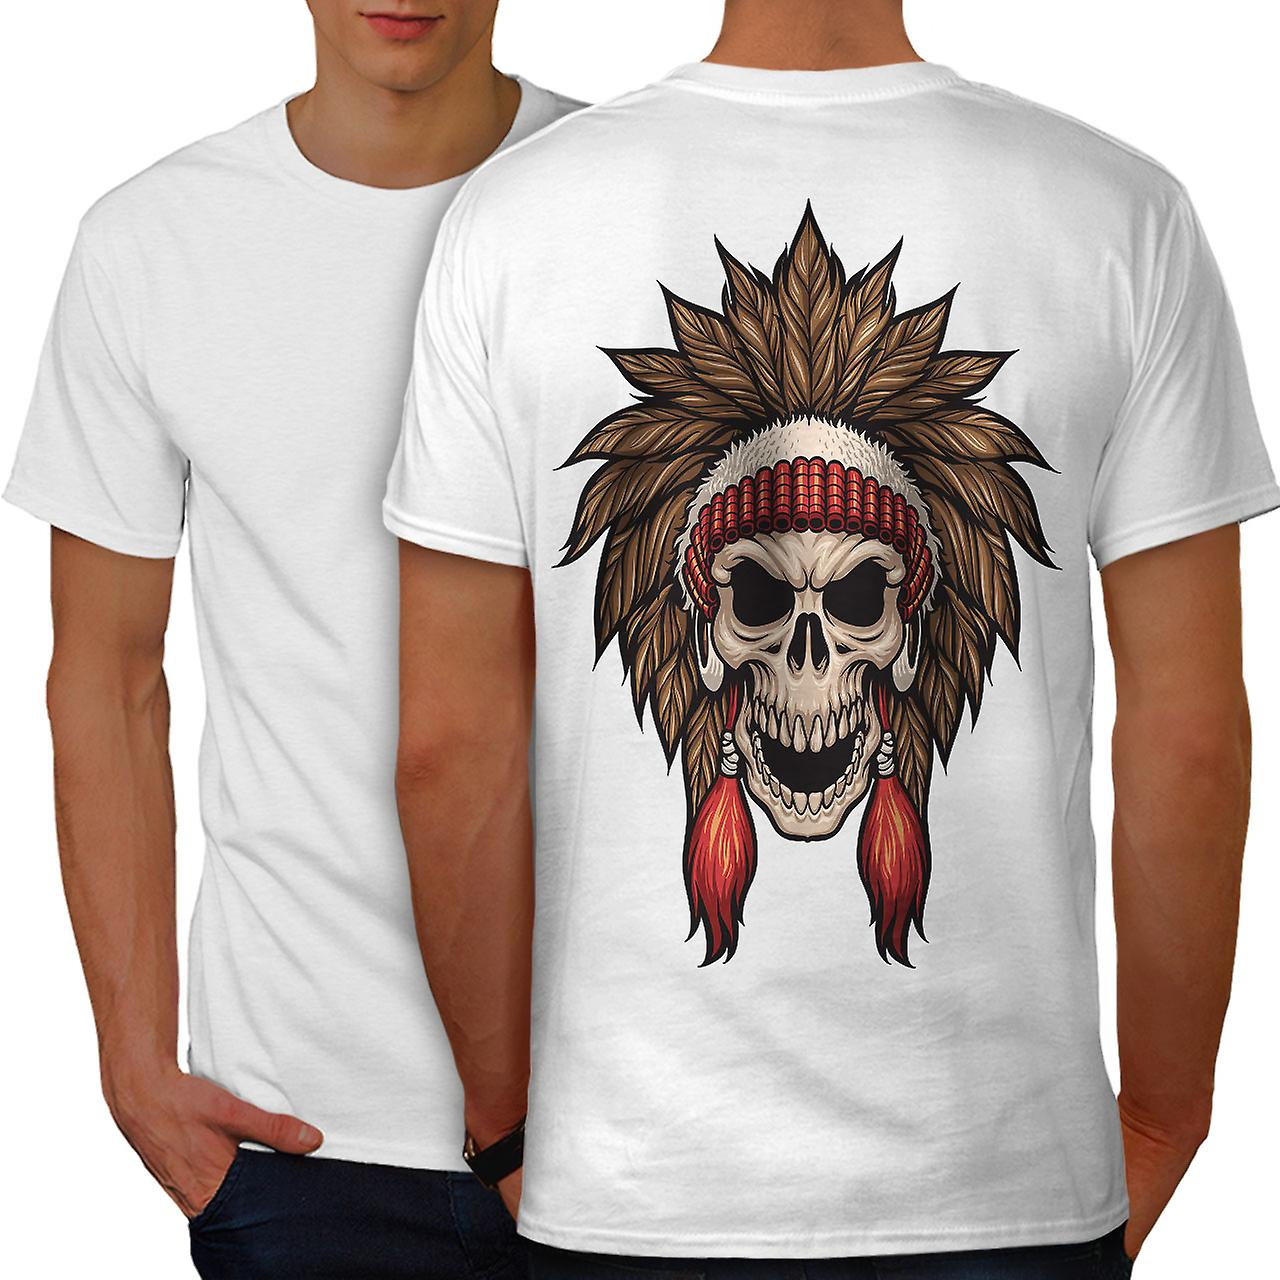 v tements indiens art skull homme t shirt blanc retour wellcoda fruugo. Black Bedroom Furniture Sets. Home Design Ideas